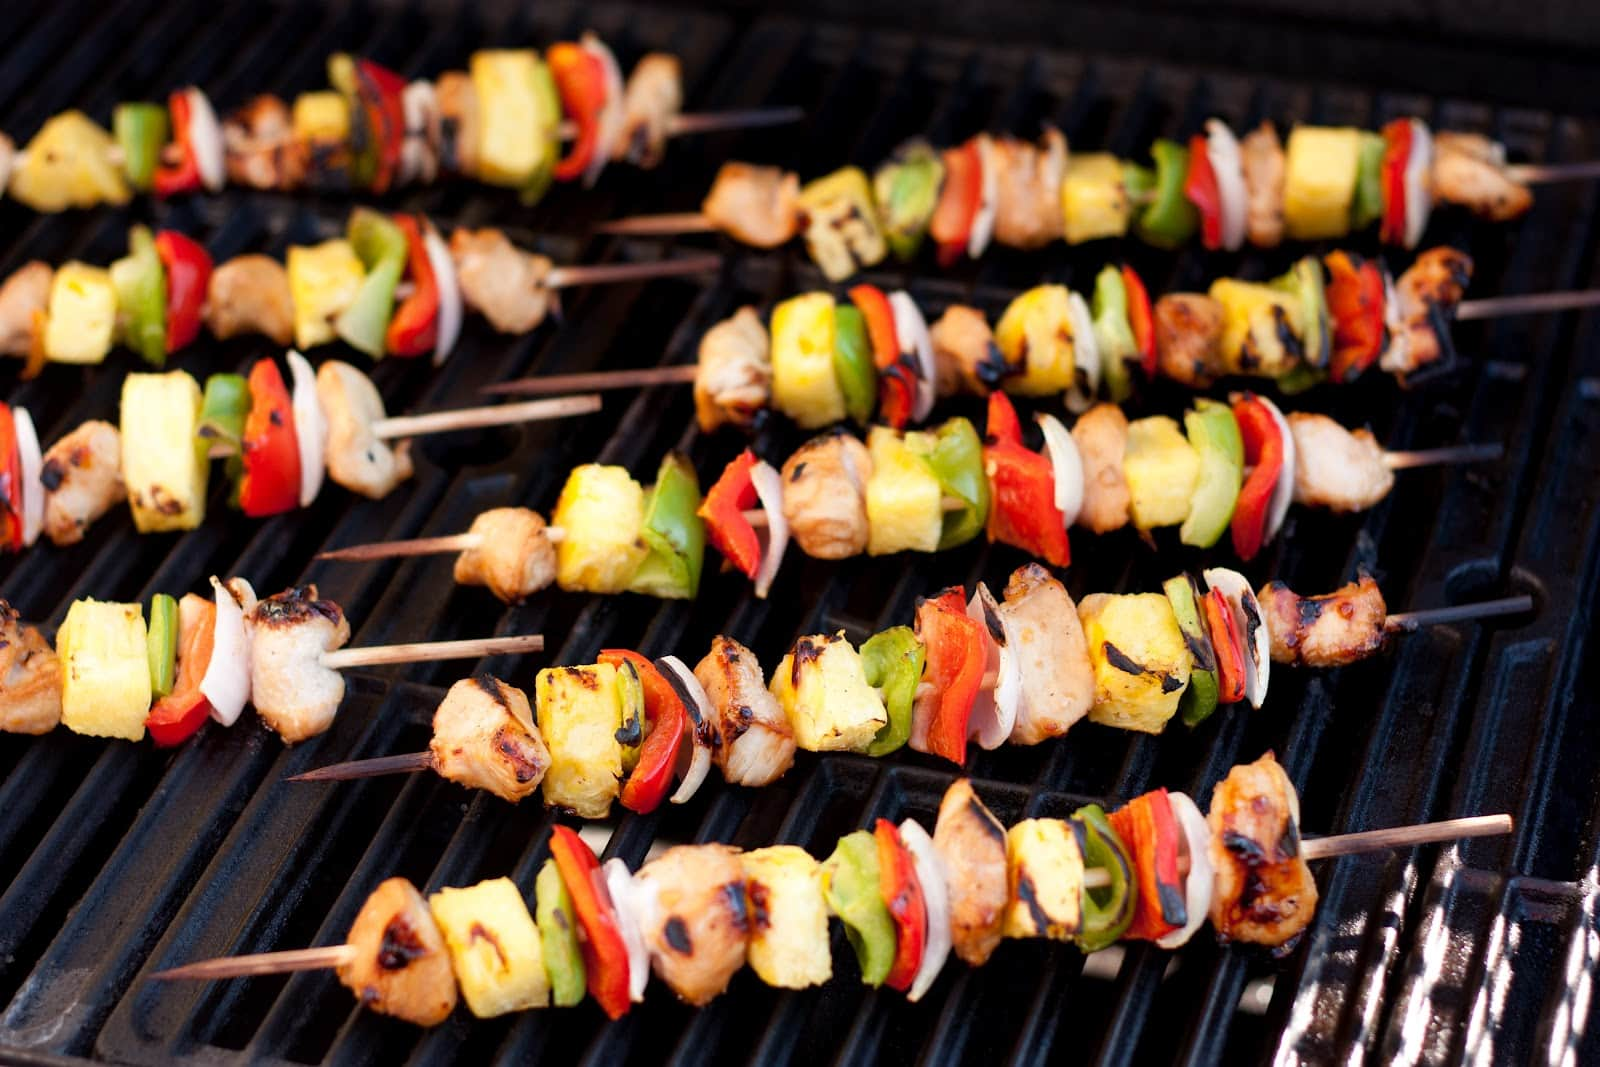 How long do i grill chicken kabobs - Grilled Chicken Teriyaki Kebobs